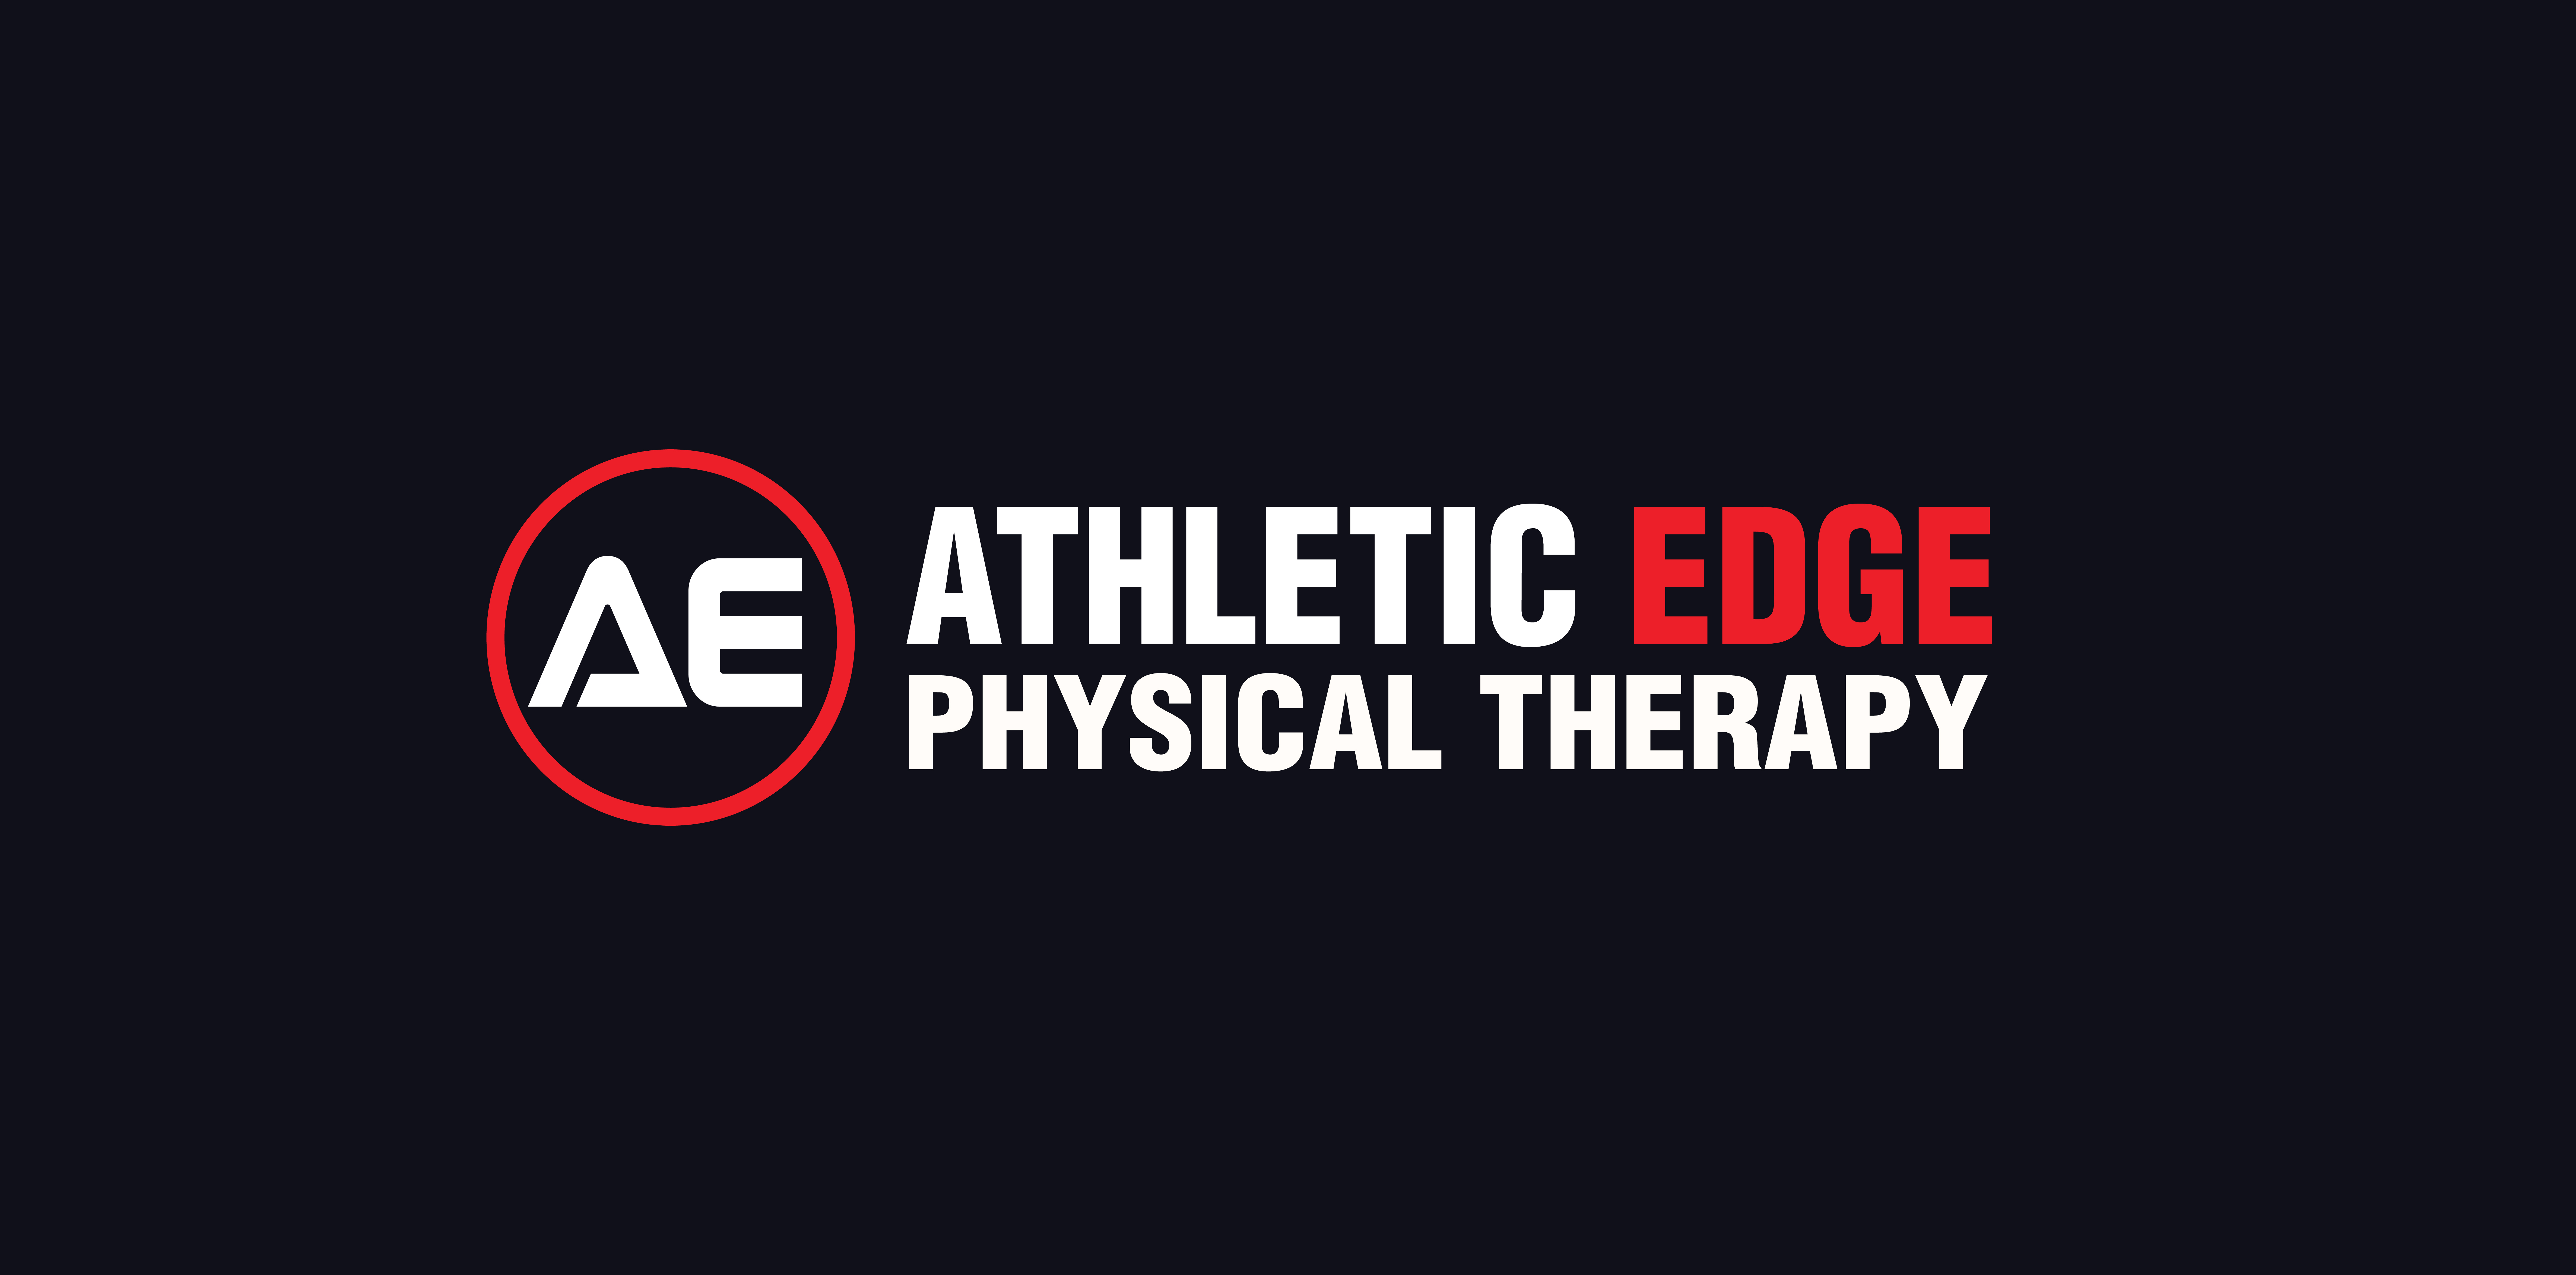 Athletic Edge Physical Therapy 1440 Adams St, Chattanooga